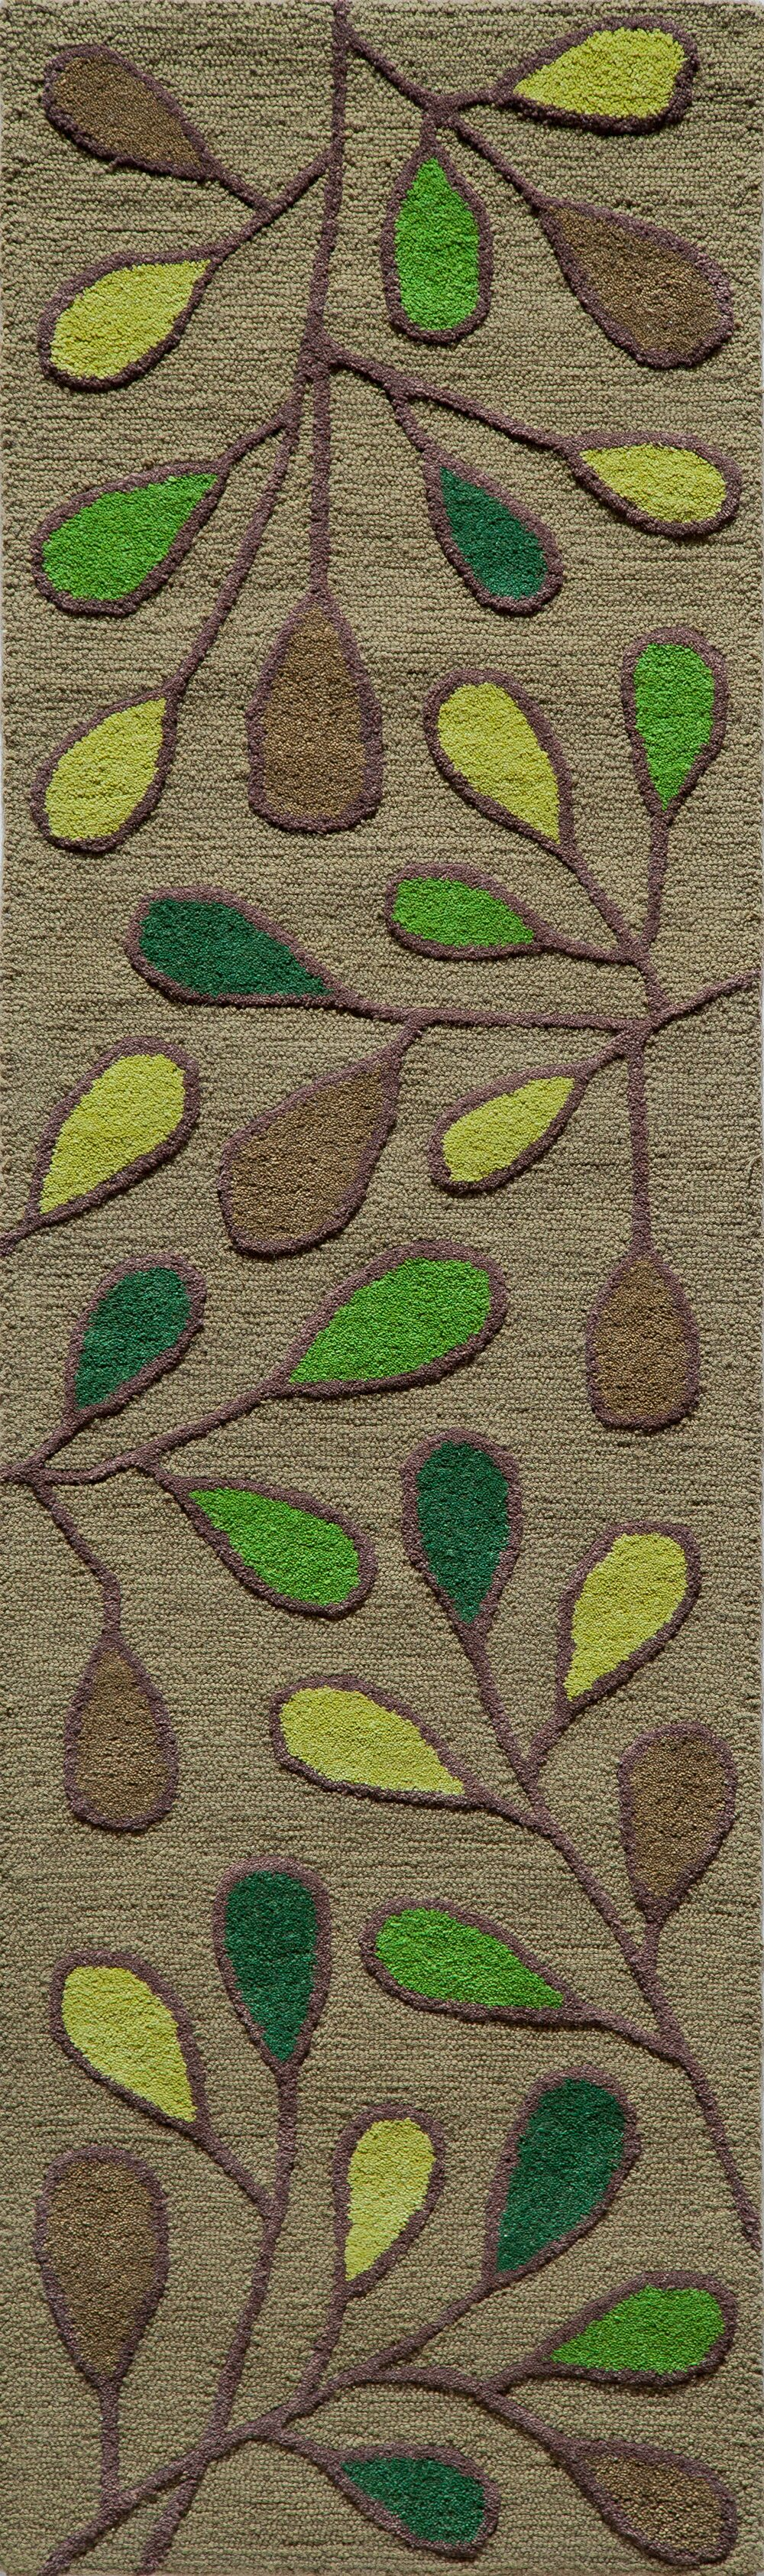 Coyan Hand-Tufted Green Area Rug Rug Size: Rectangle 3'6